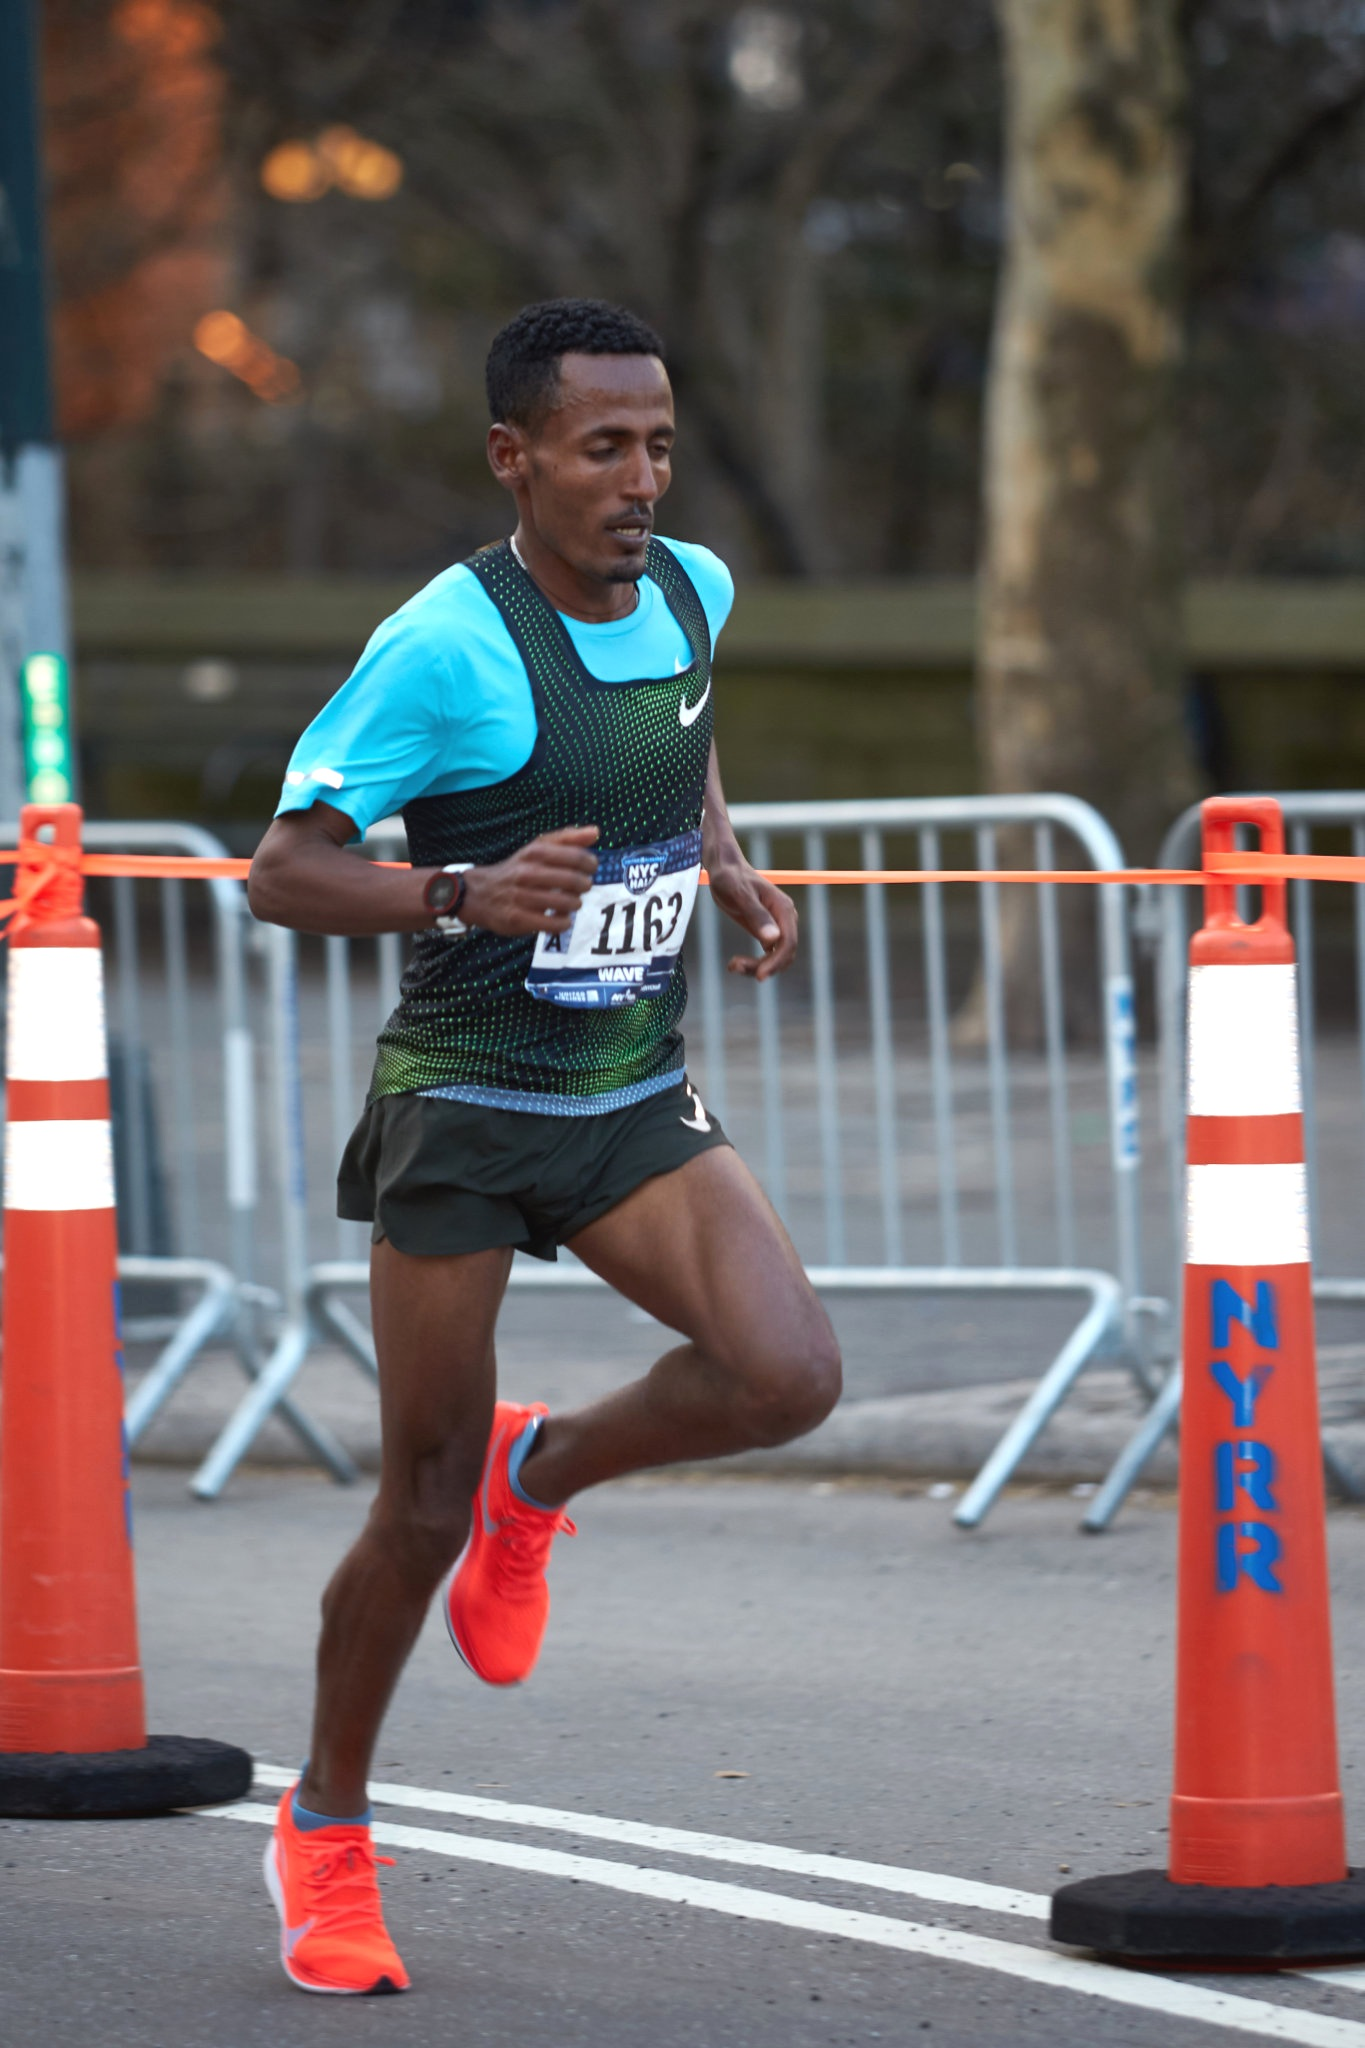 2019 United Airlines New York City Half Marathon - Sunday, March 17 - BELAY TILAHUN BEZABEH (ETH)